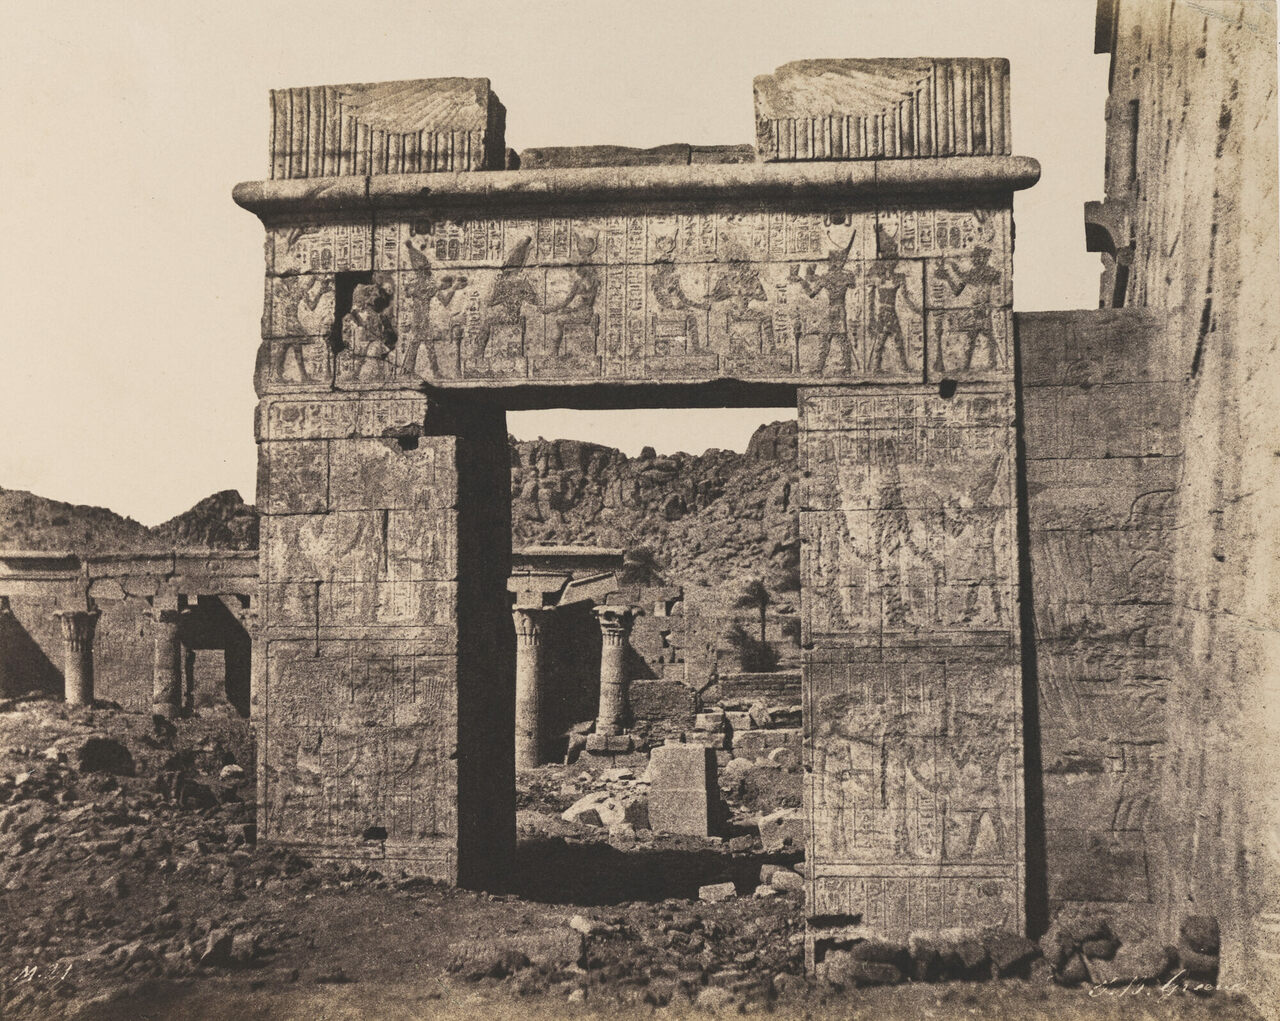 Greene photographed the temple complex on the island of Philae in 1854. More than a century later, it was moved to higher ground when dams led to flooding.